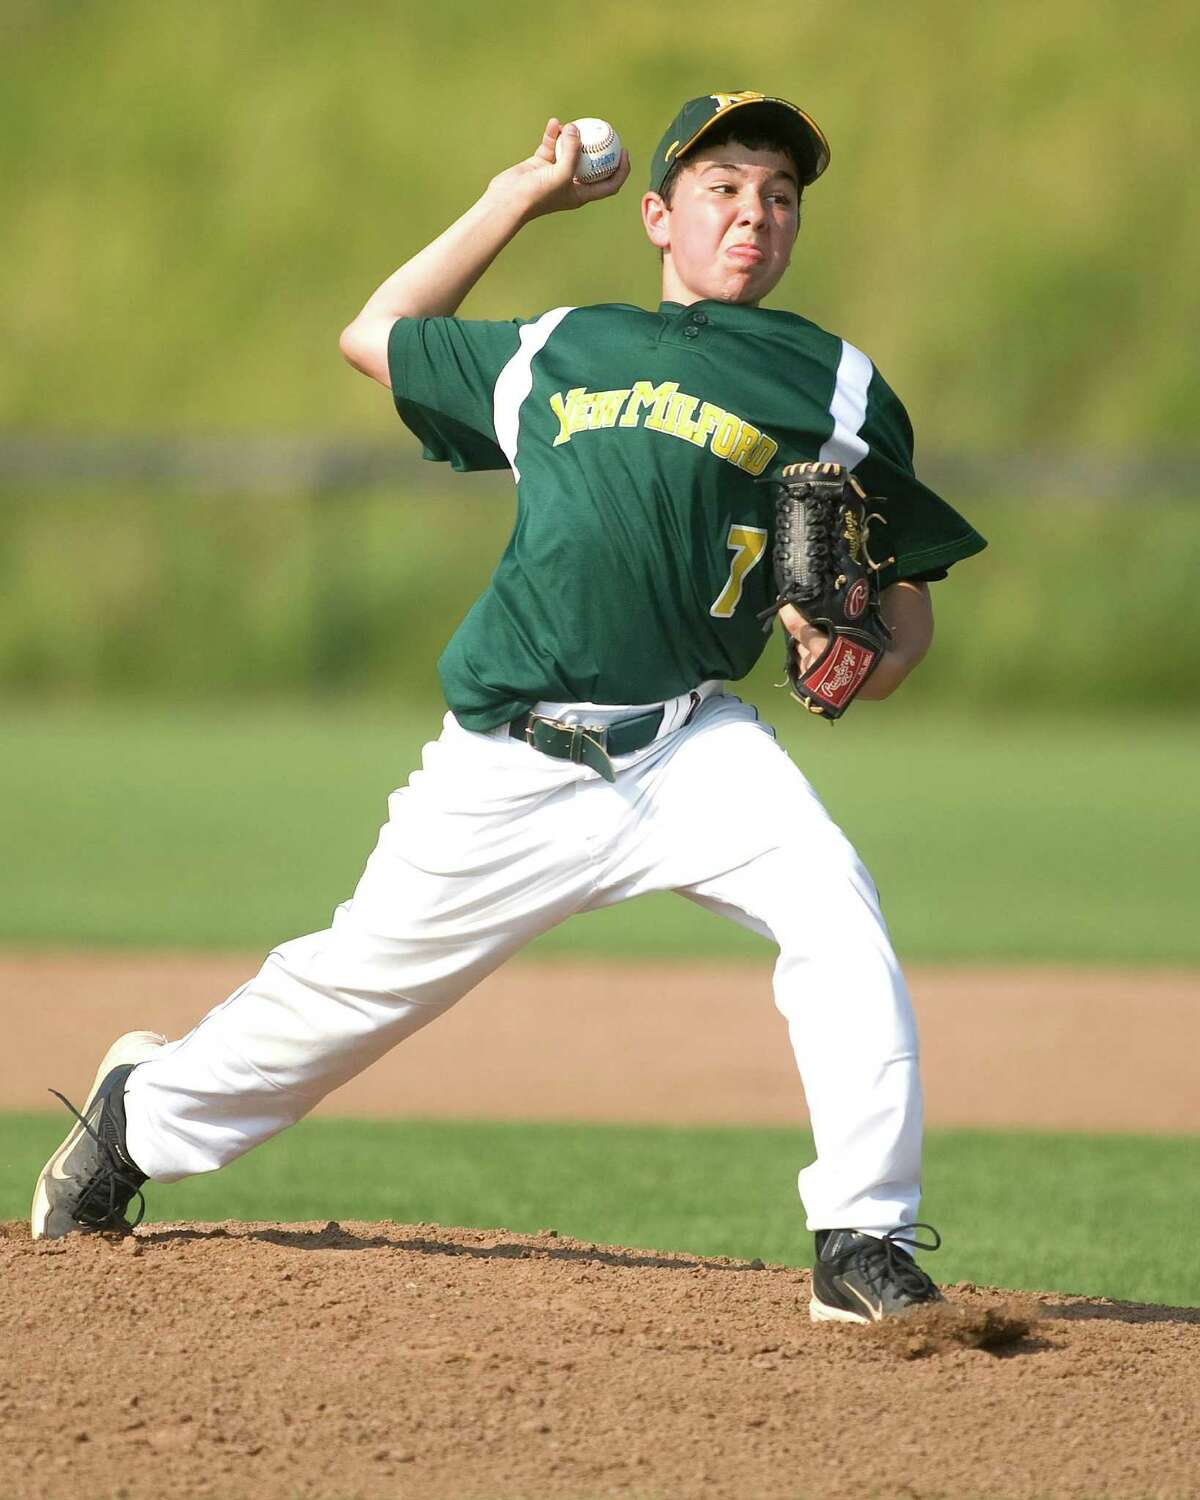 New Milford's Robert Mosso was the first game starter against Pomperaug in the Jimmy Fund 13-year-old championship game Tuesday on the Fairfield Hills campus in Newtown.